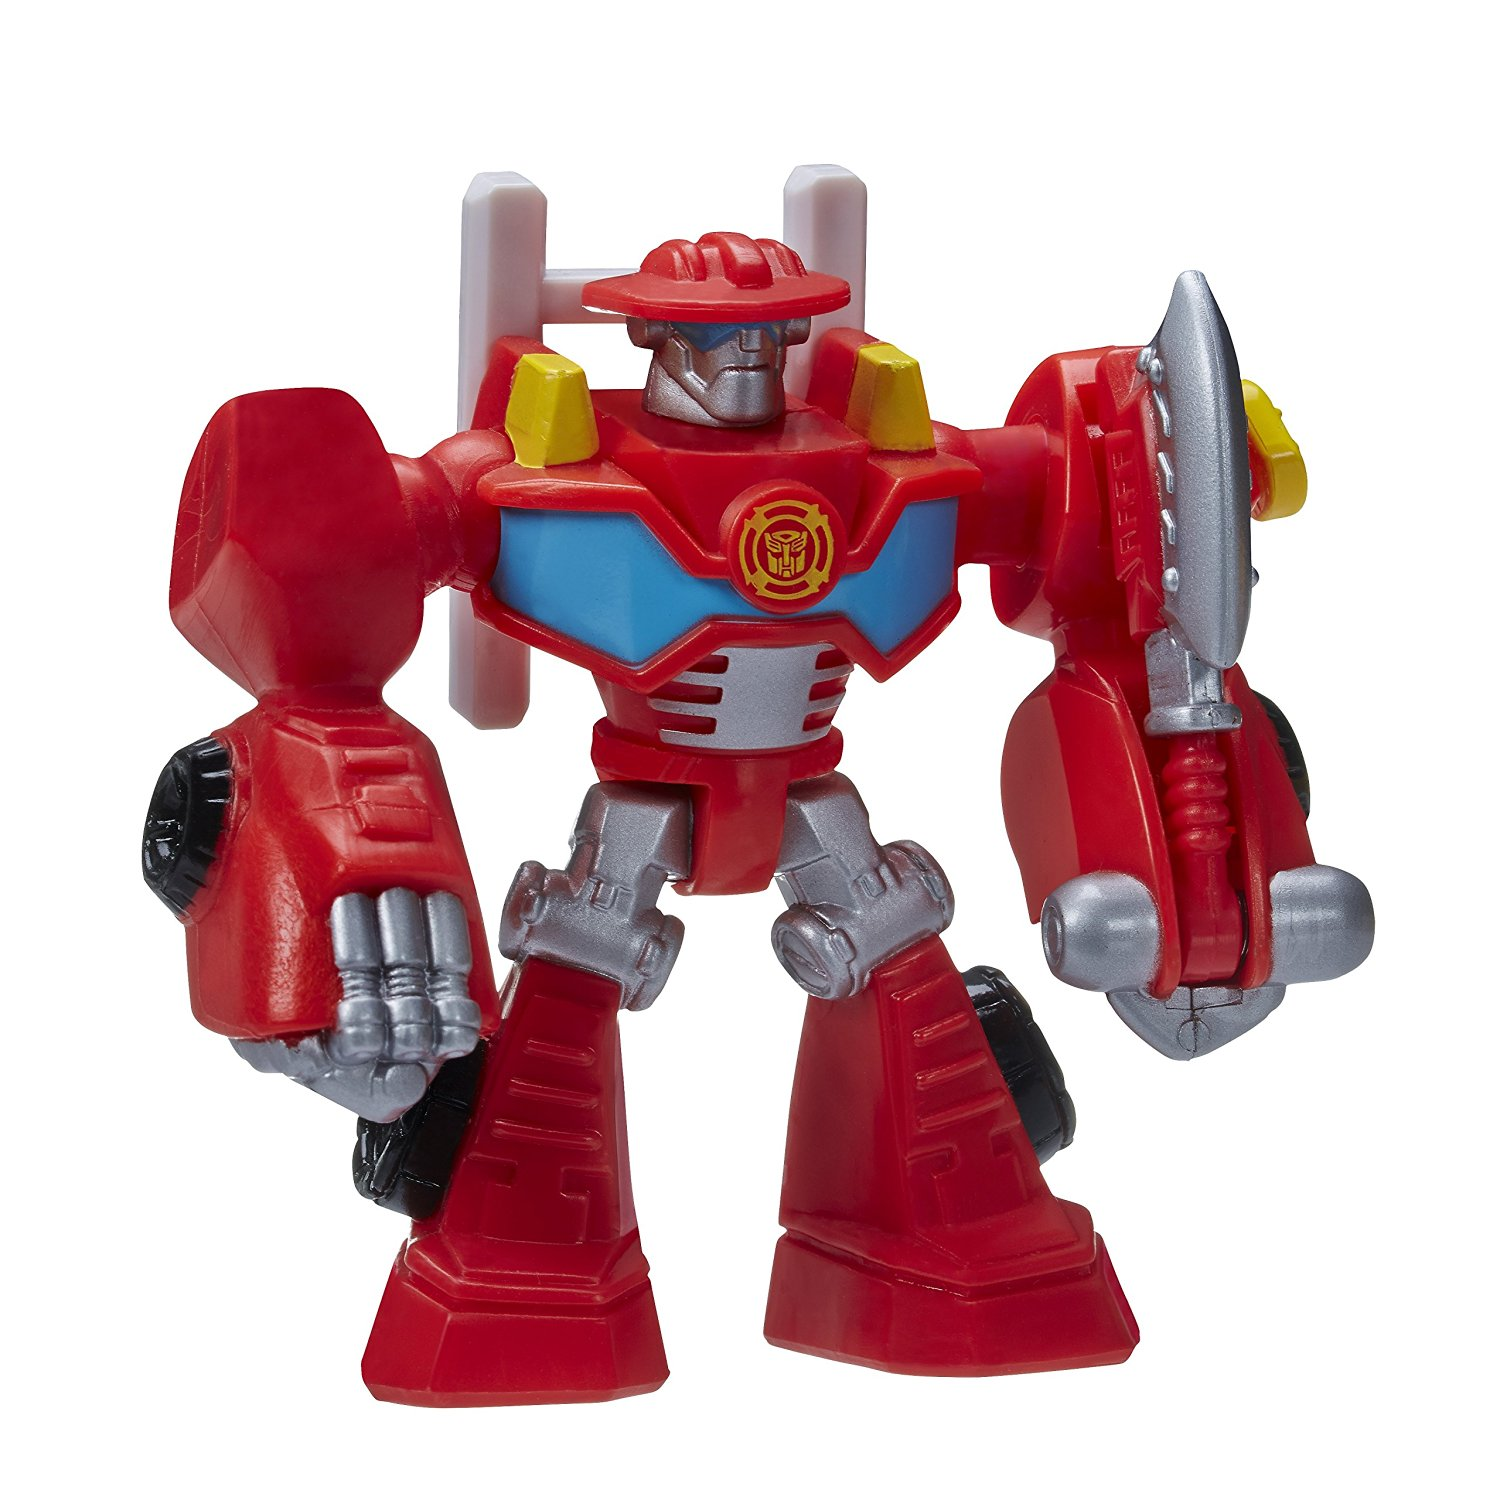 Playskool Heroes, Transformers Rescue Bots, Heatwave The Fire-Bot Figure, 3.5 Inches